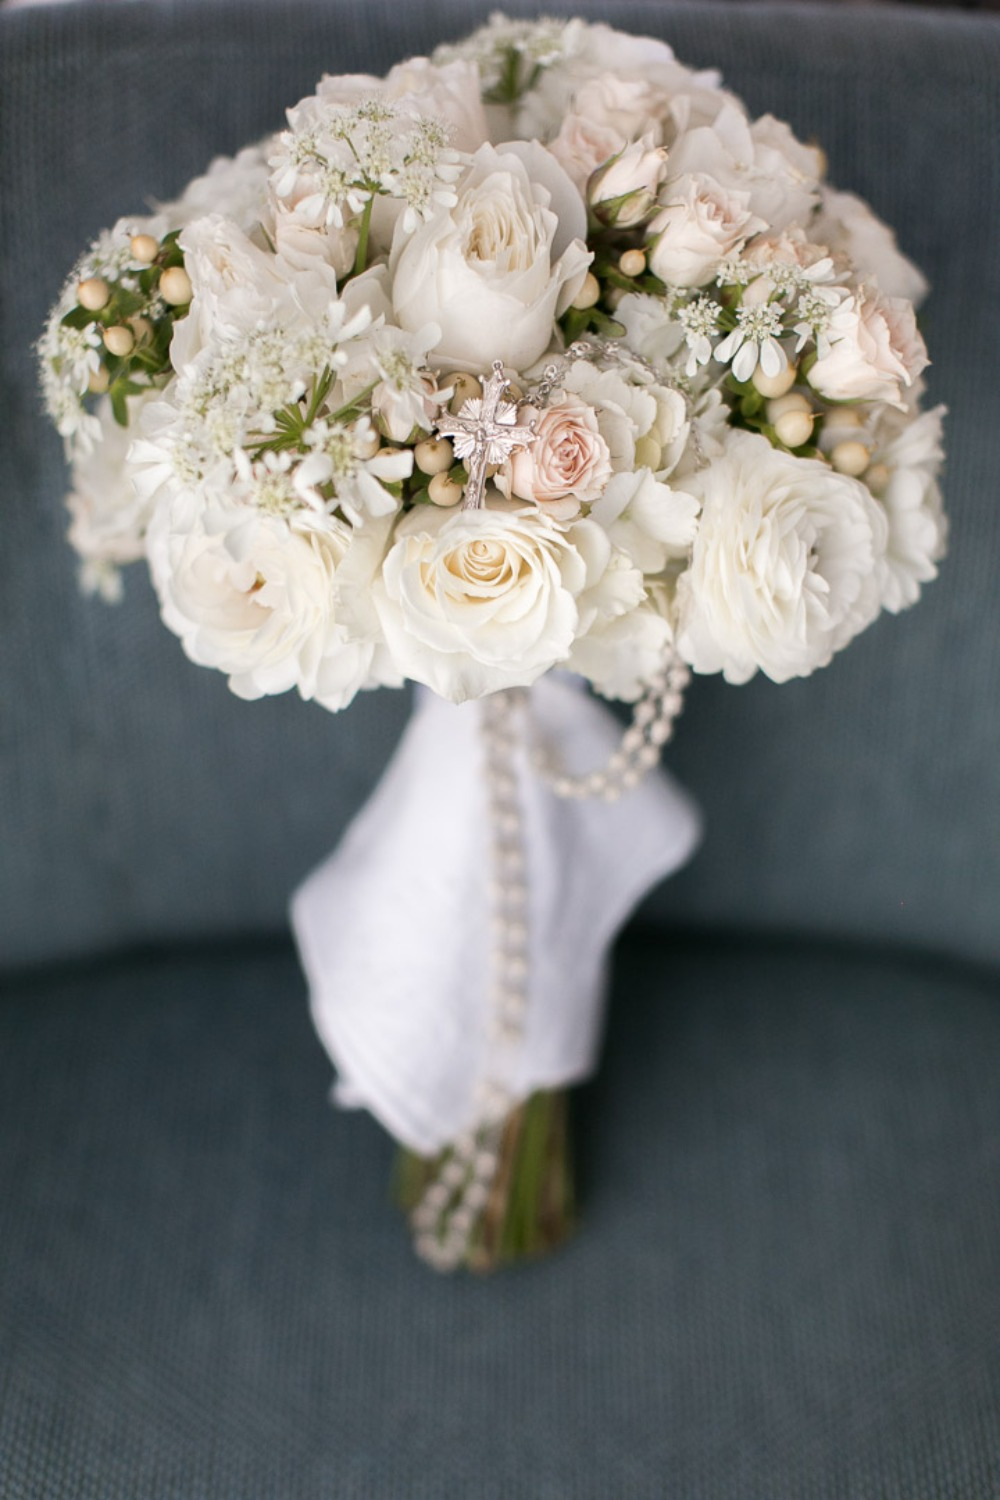 Bridal Bouquets New Orleans : Black tie new orleans wedding